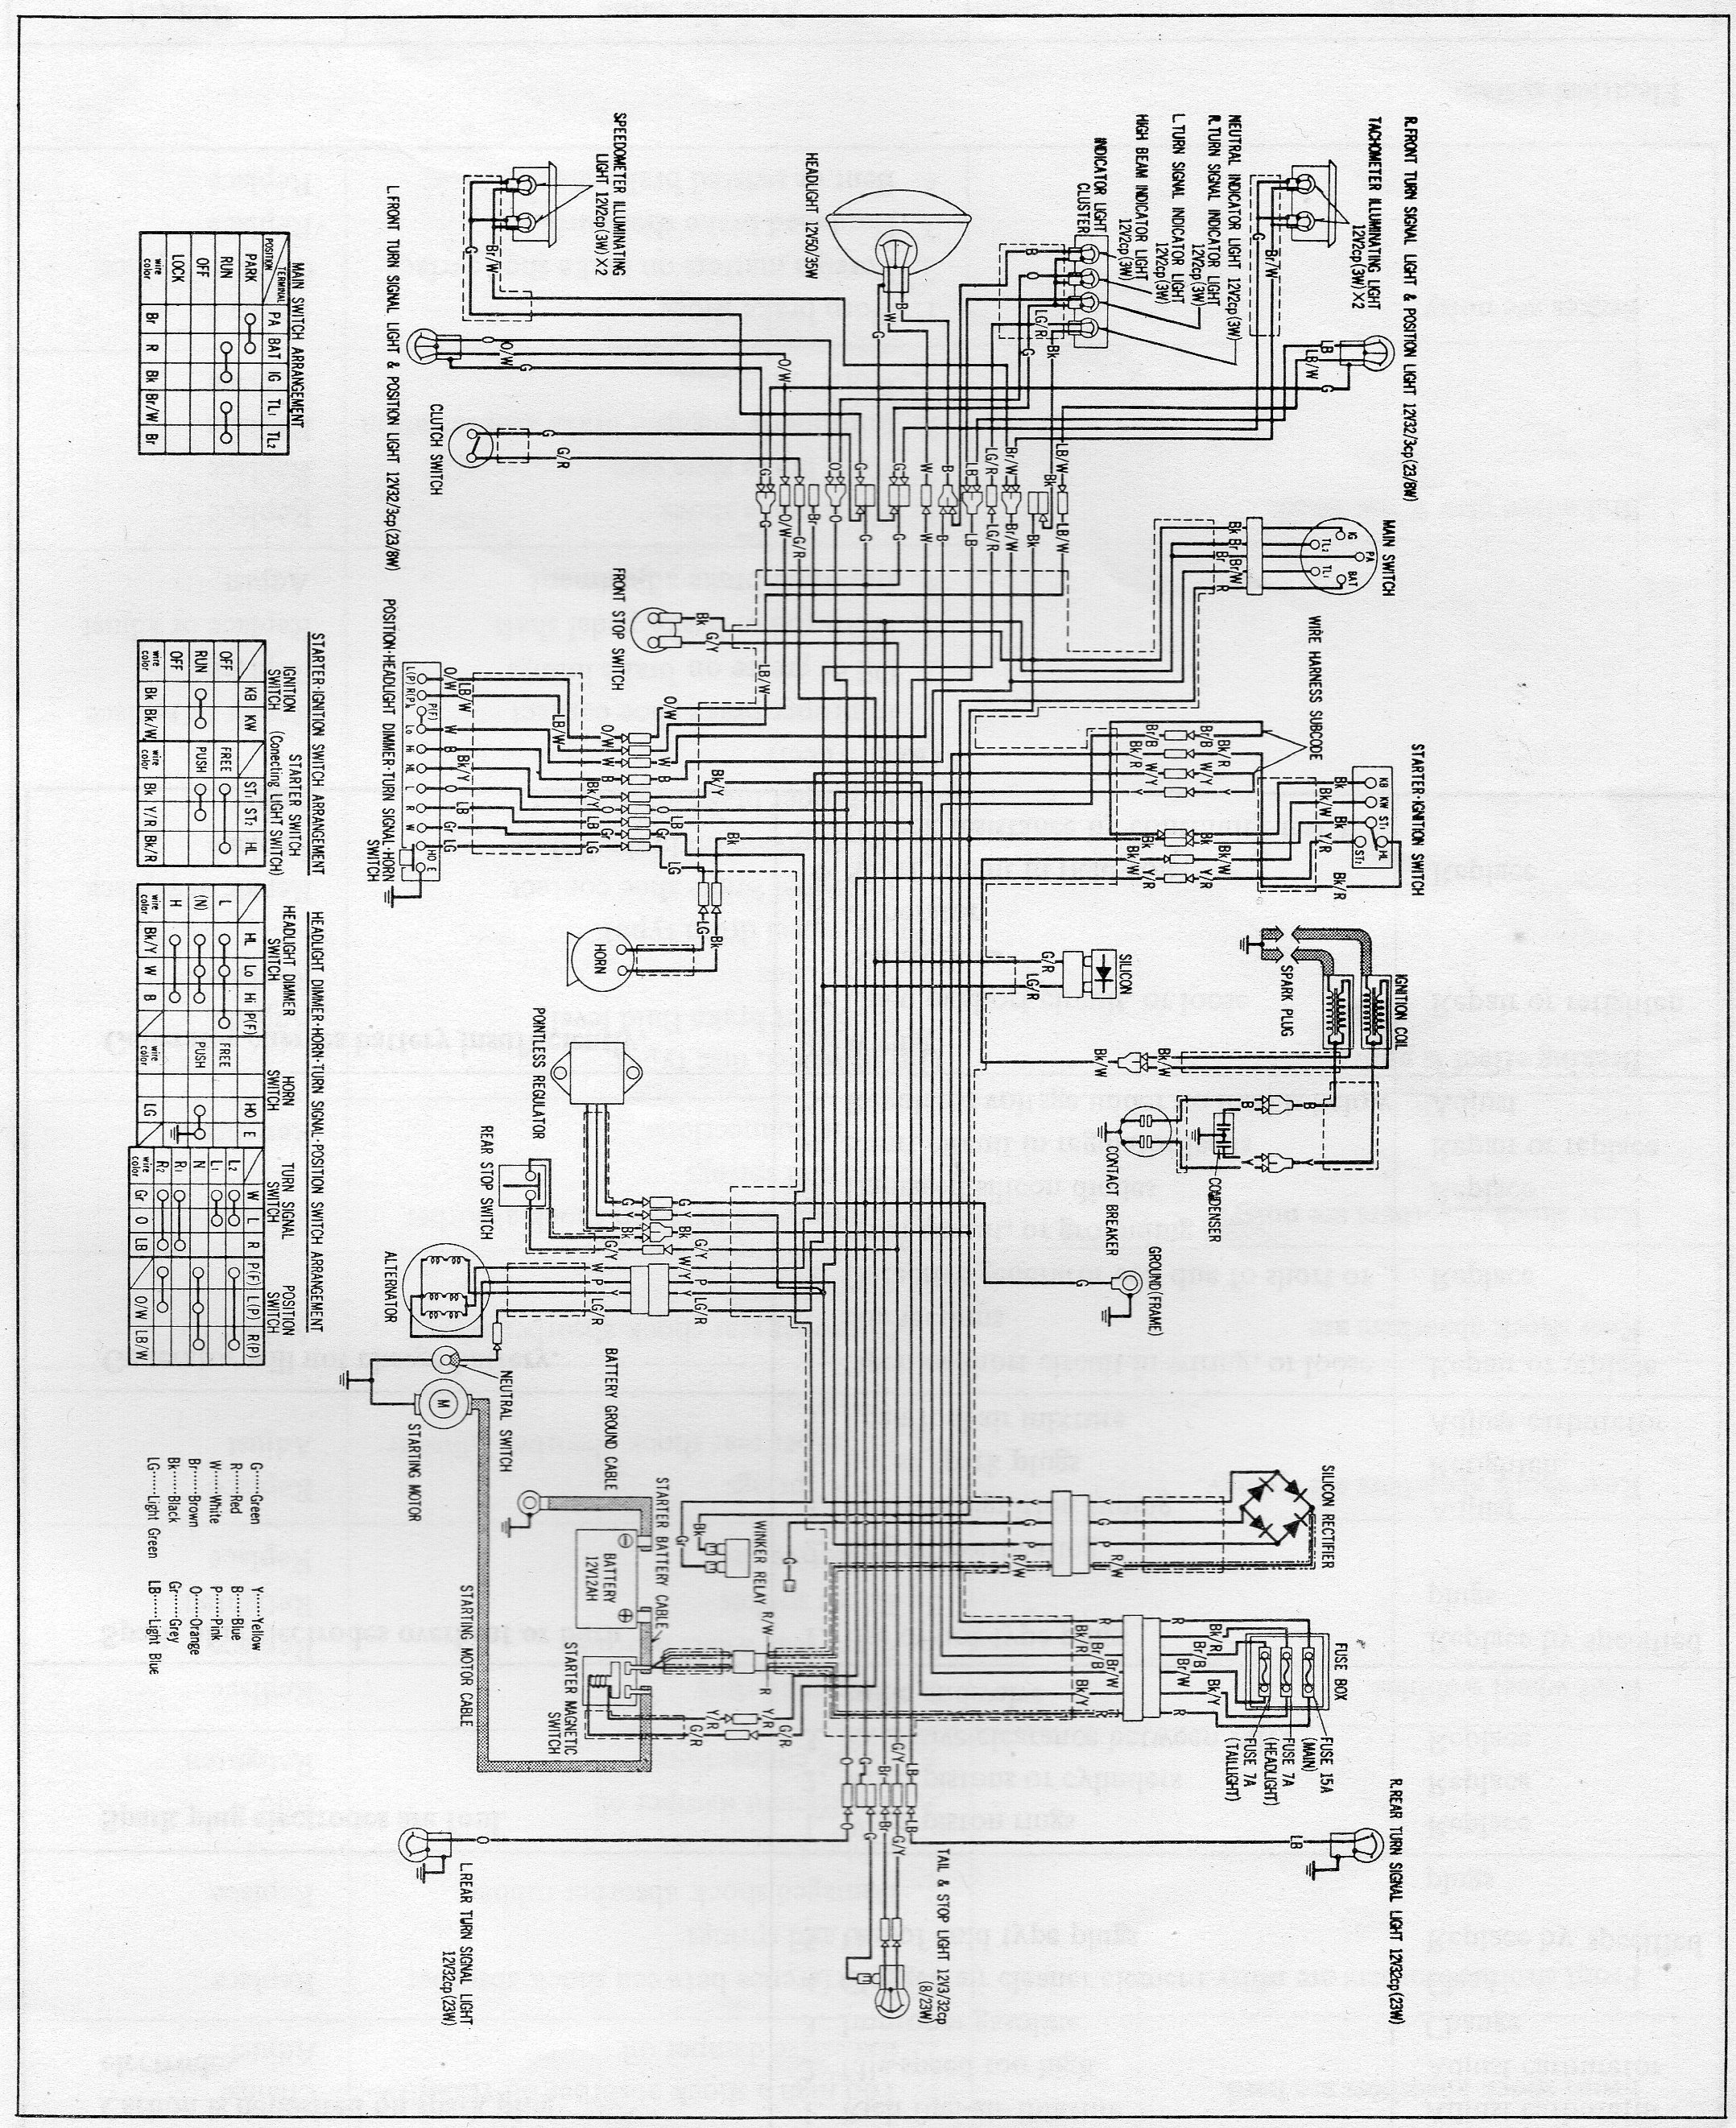 DIAGRAM] Sawstop Wiring Diagram FULL Version HD Quality Wiring Diagram -  DIAGRAMMAN.CONOSCENZACALABRIA.IT | Wildcat Snowblower Parts Diagram Wiring |  | diagramman.conoscenzacalabria.it